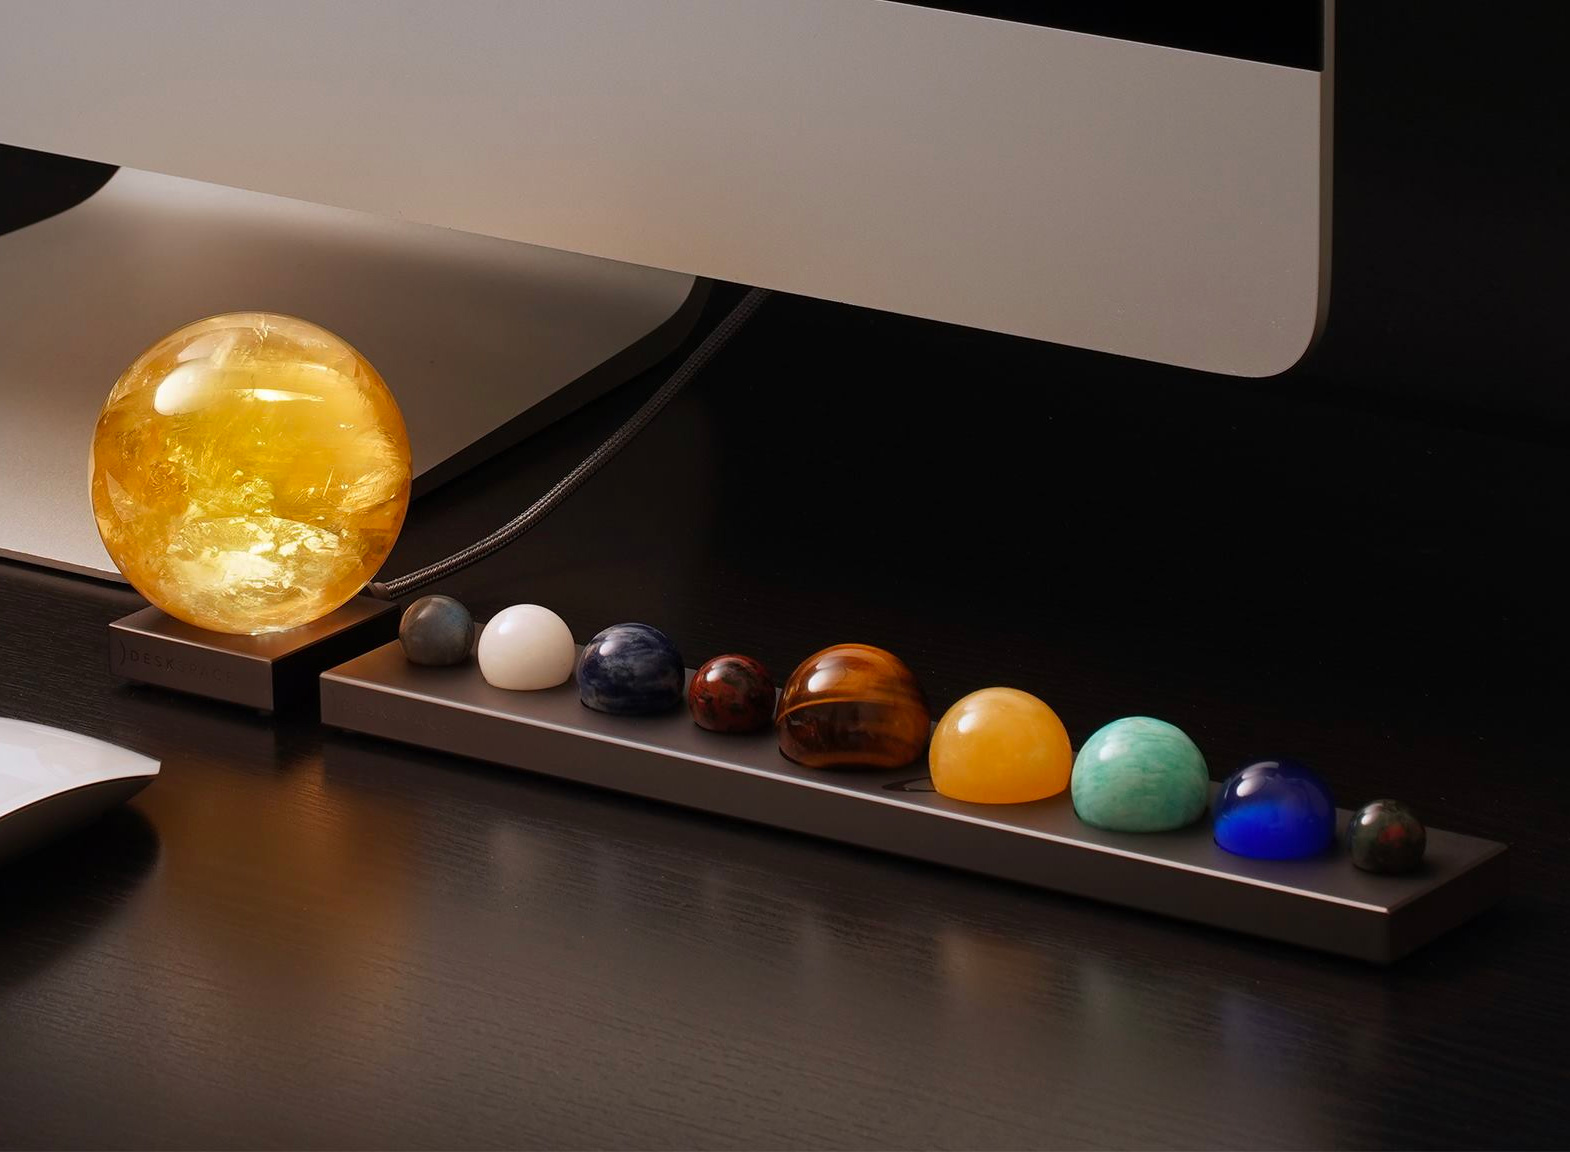 Bring The Solar System To Your Desktop at werd.com